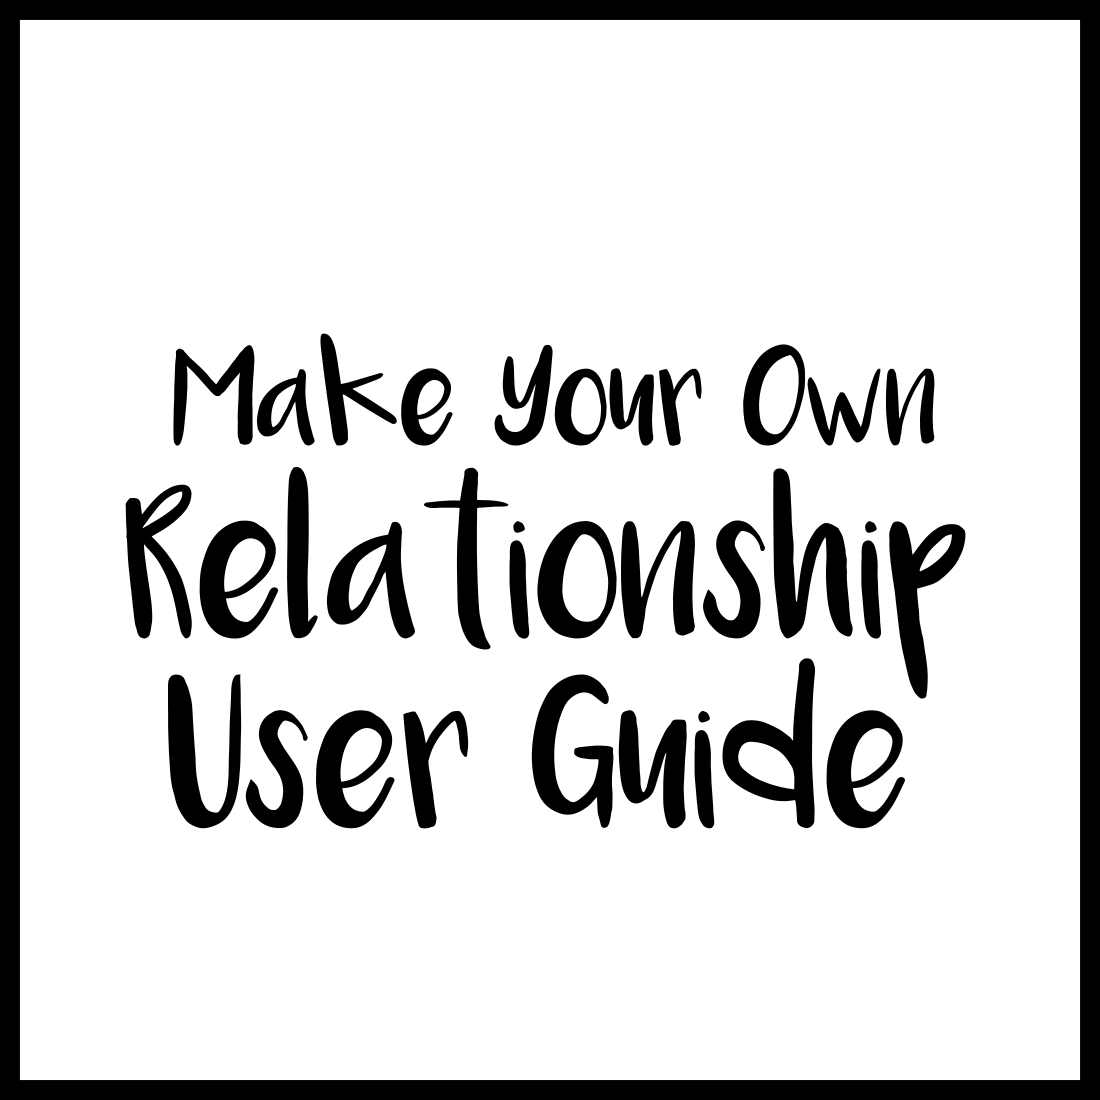 Make your own relationship user guide make your own relationship user guide publicscrutiny Choice Image